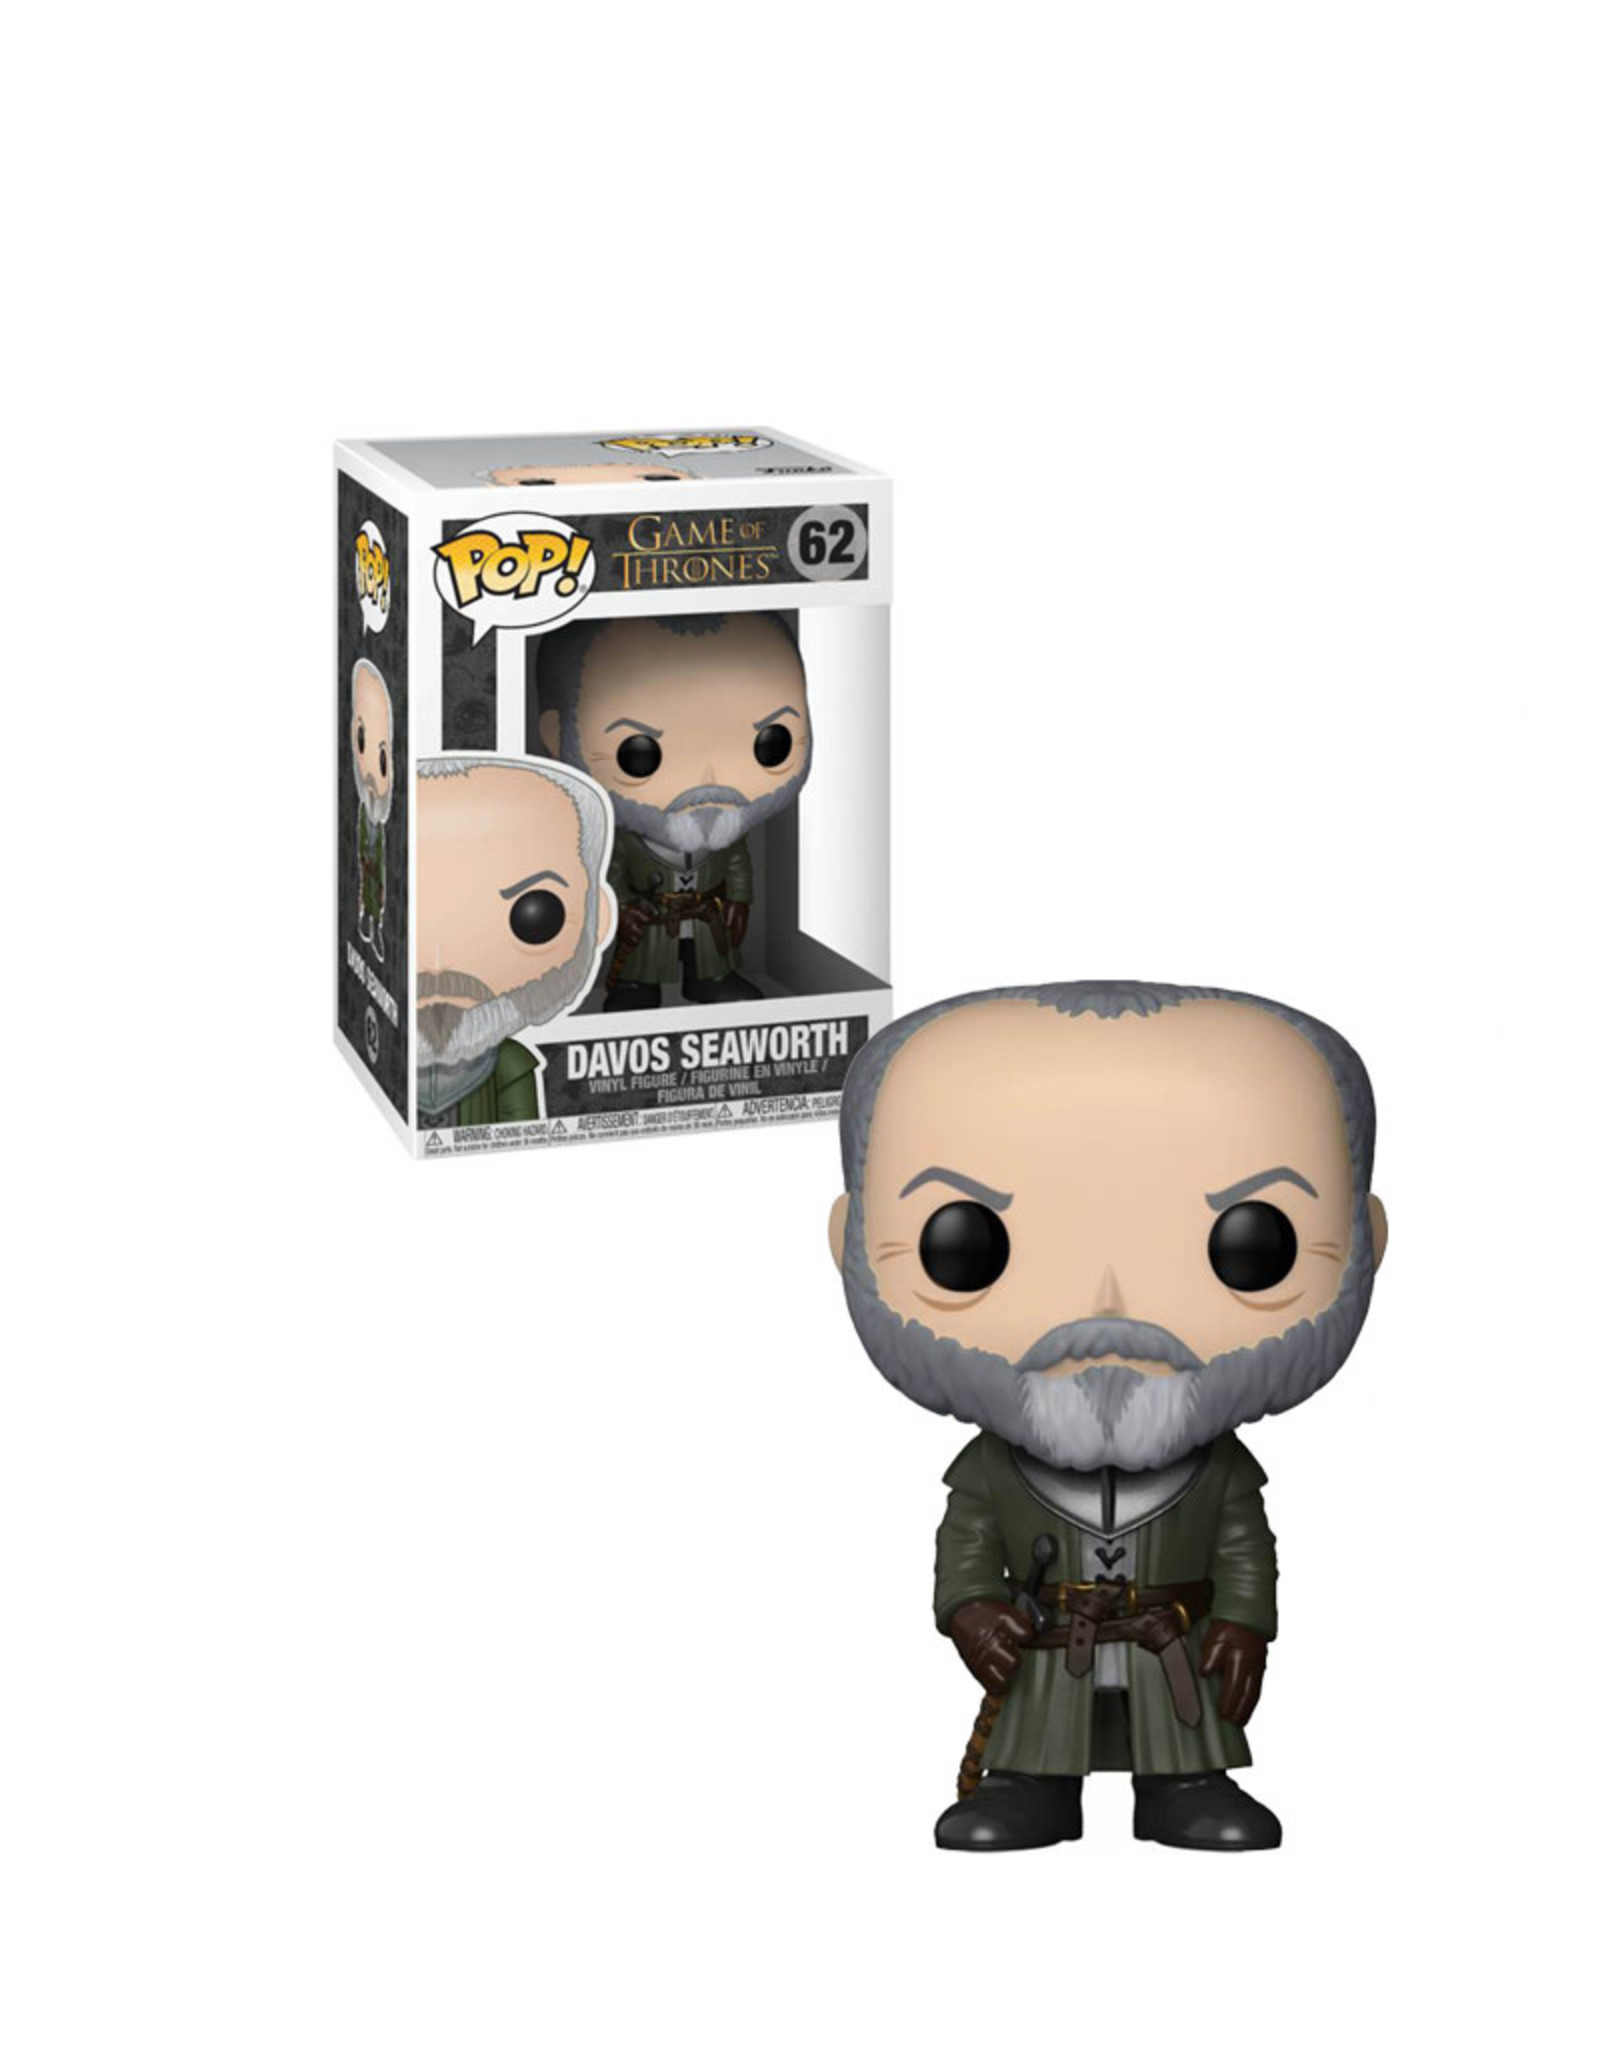 Game of thrones Davos Seaworth 62 ( Funko Pop ) Game of Thrones